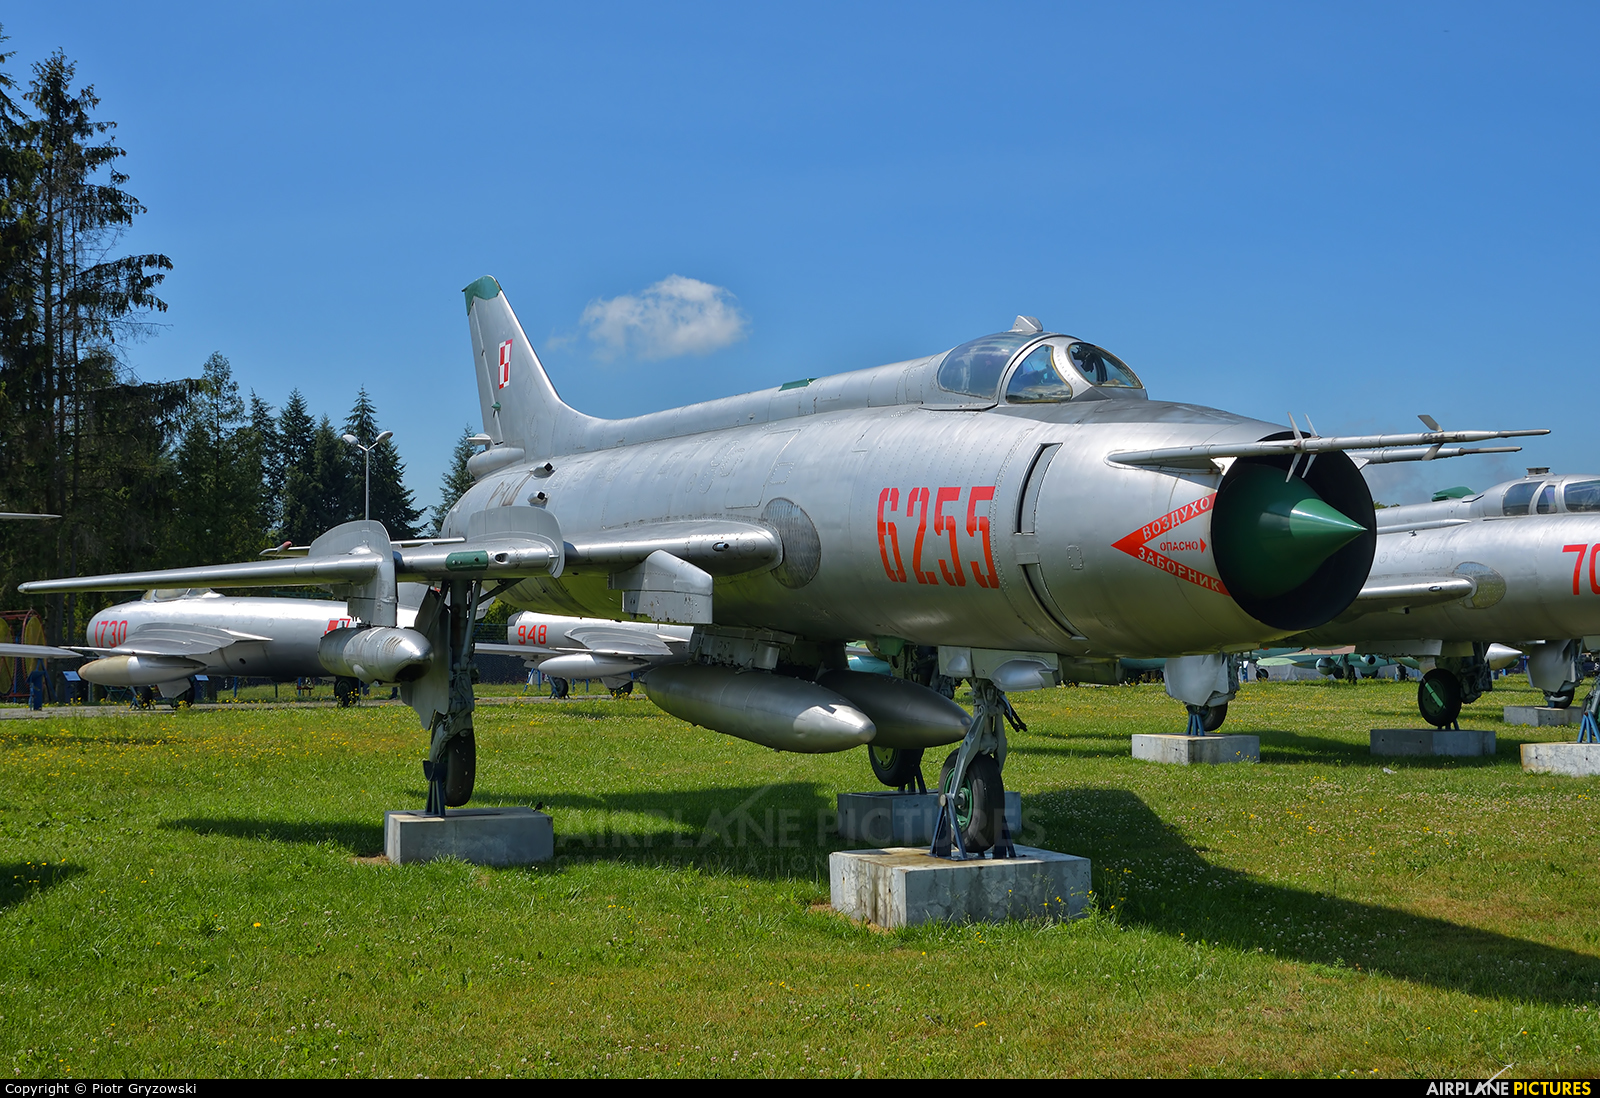 Poland - Air Force 6255 aircraft at Dęblin - Museum of Polish Air Force